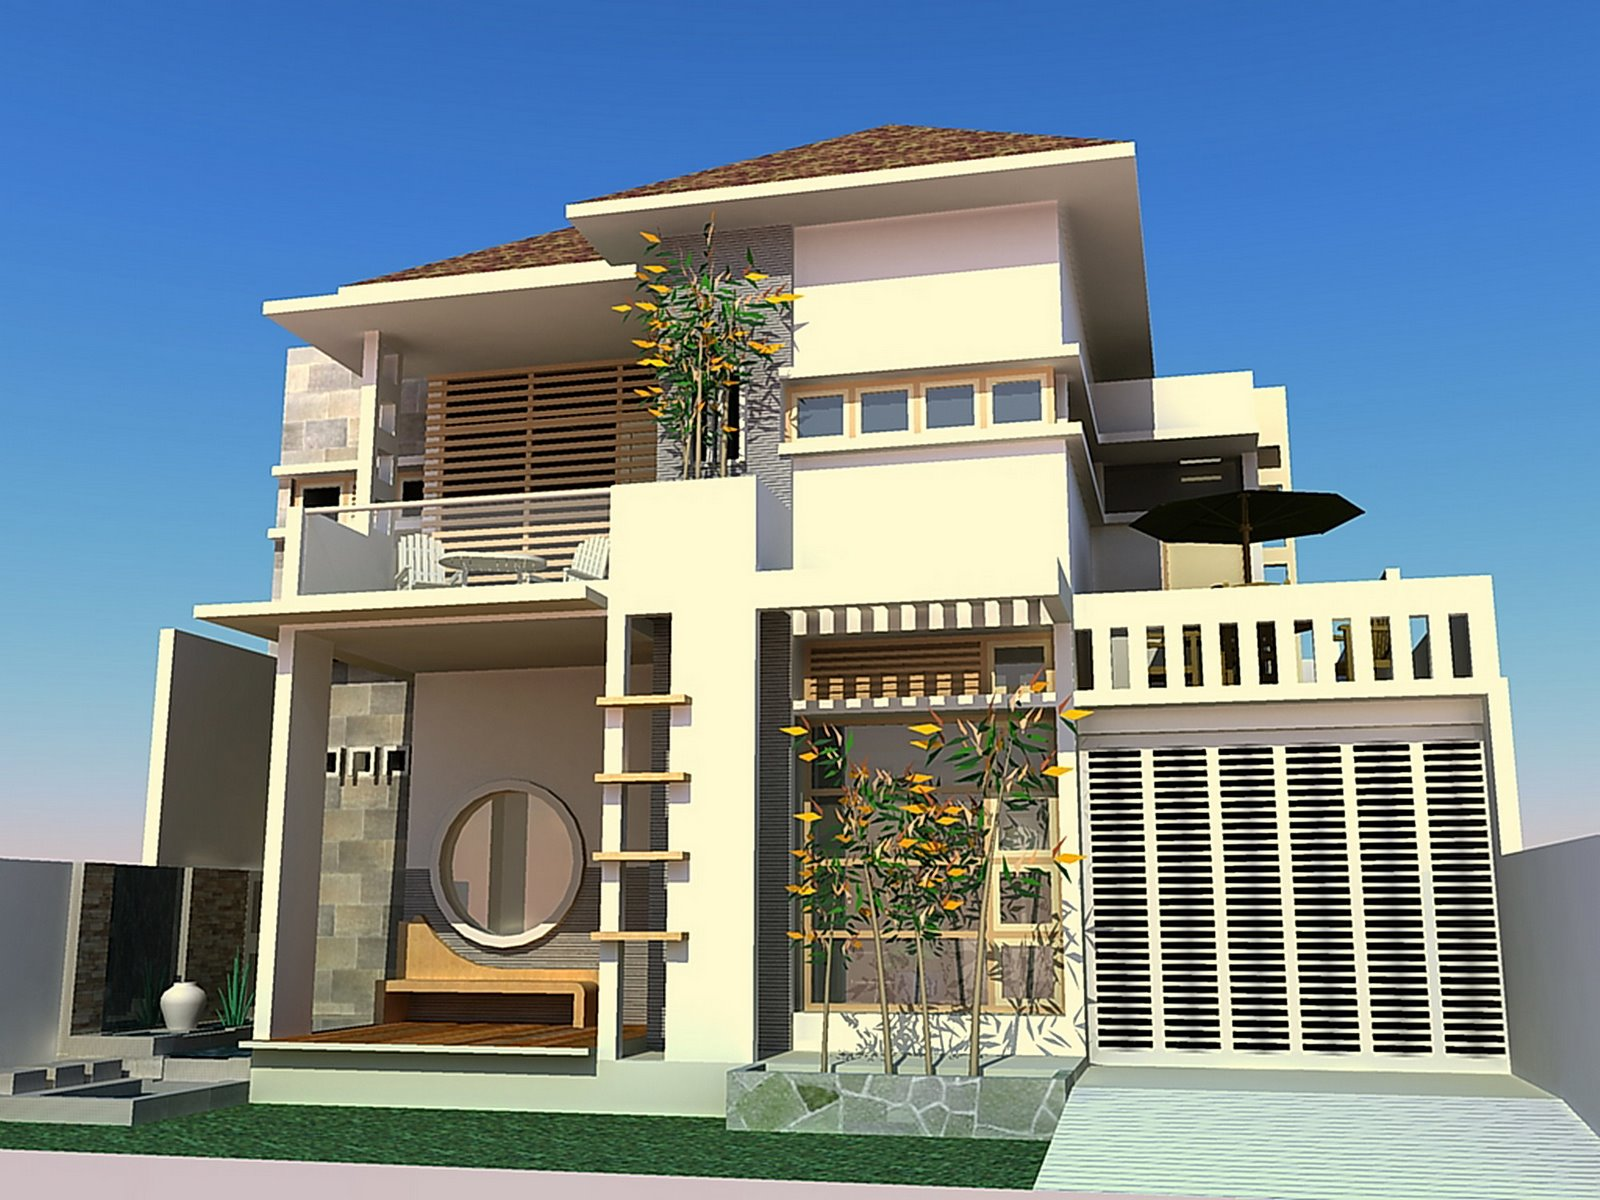 House design property external home design interior for Best house design 2014